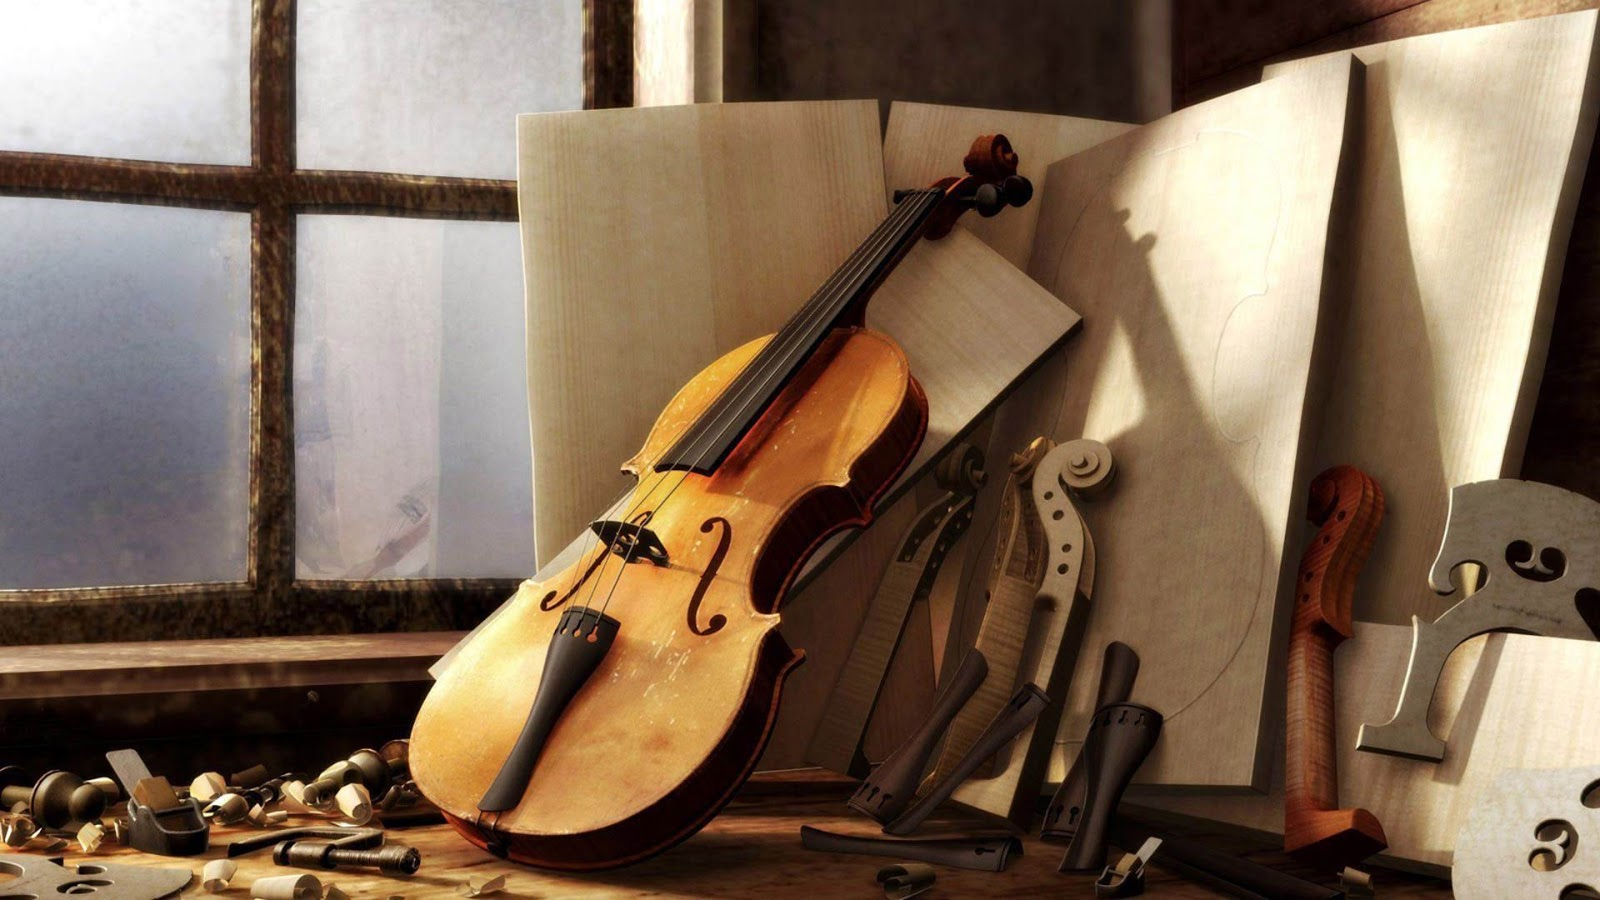 stradivarius wallpaper - photo #5